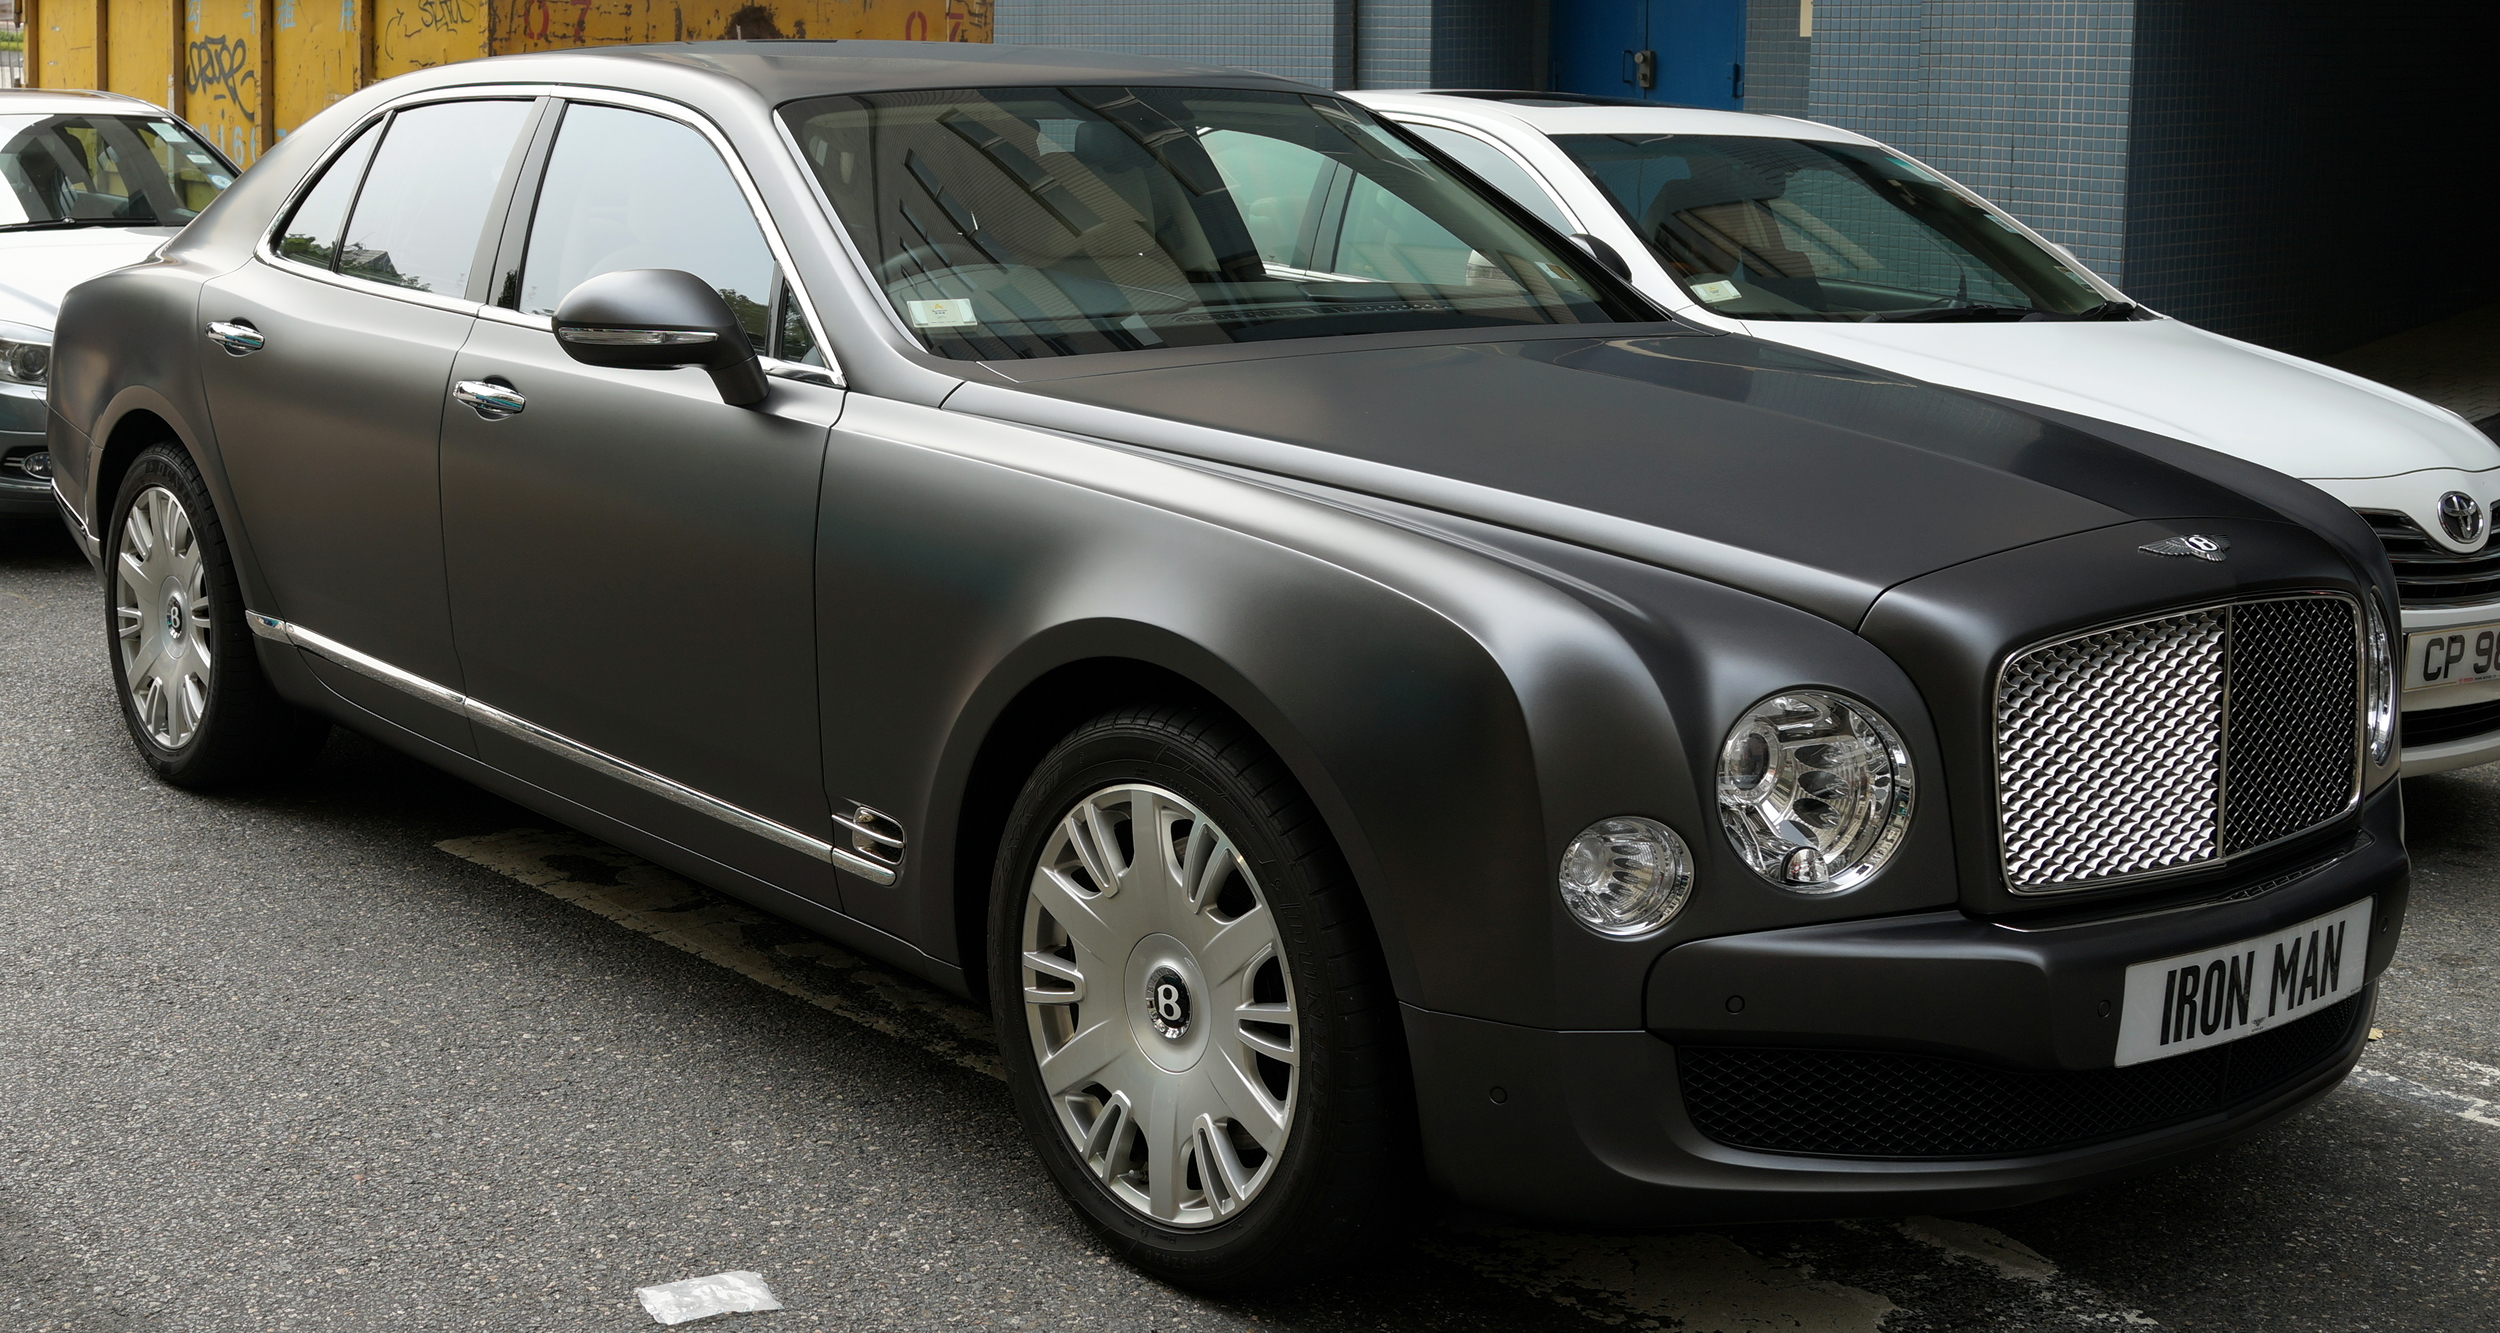 Oh my - brilliant number plate on a fabulous Bentley